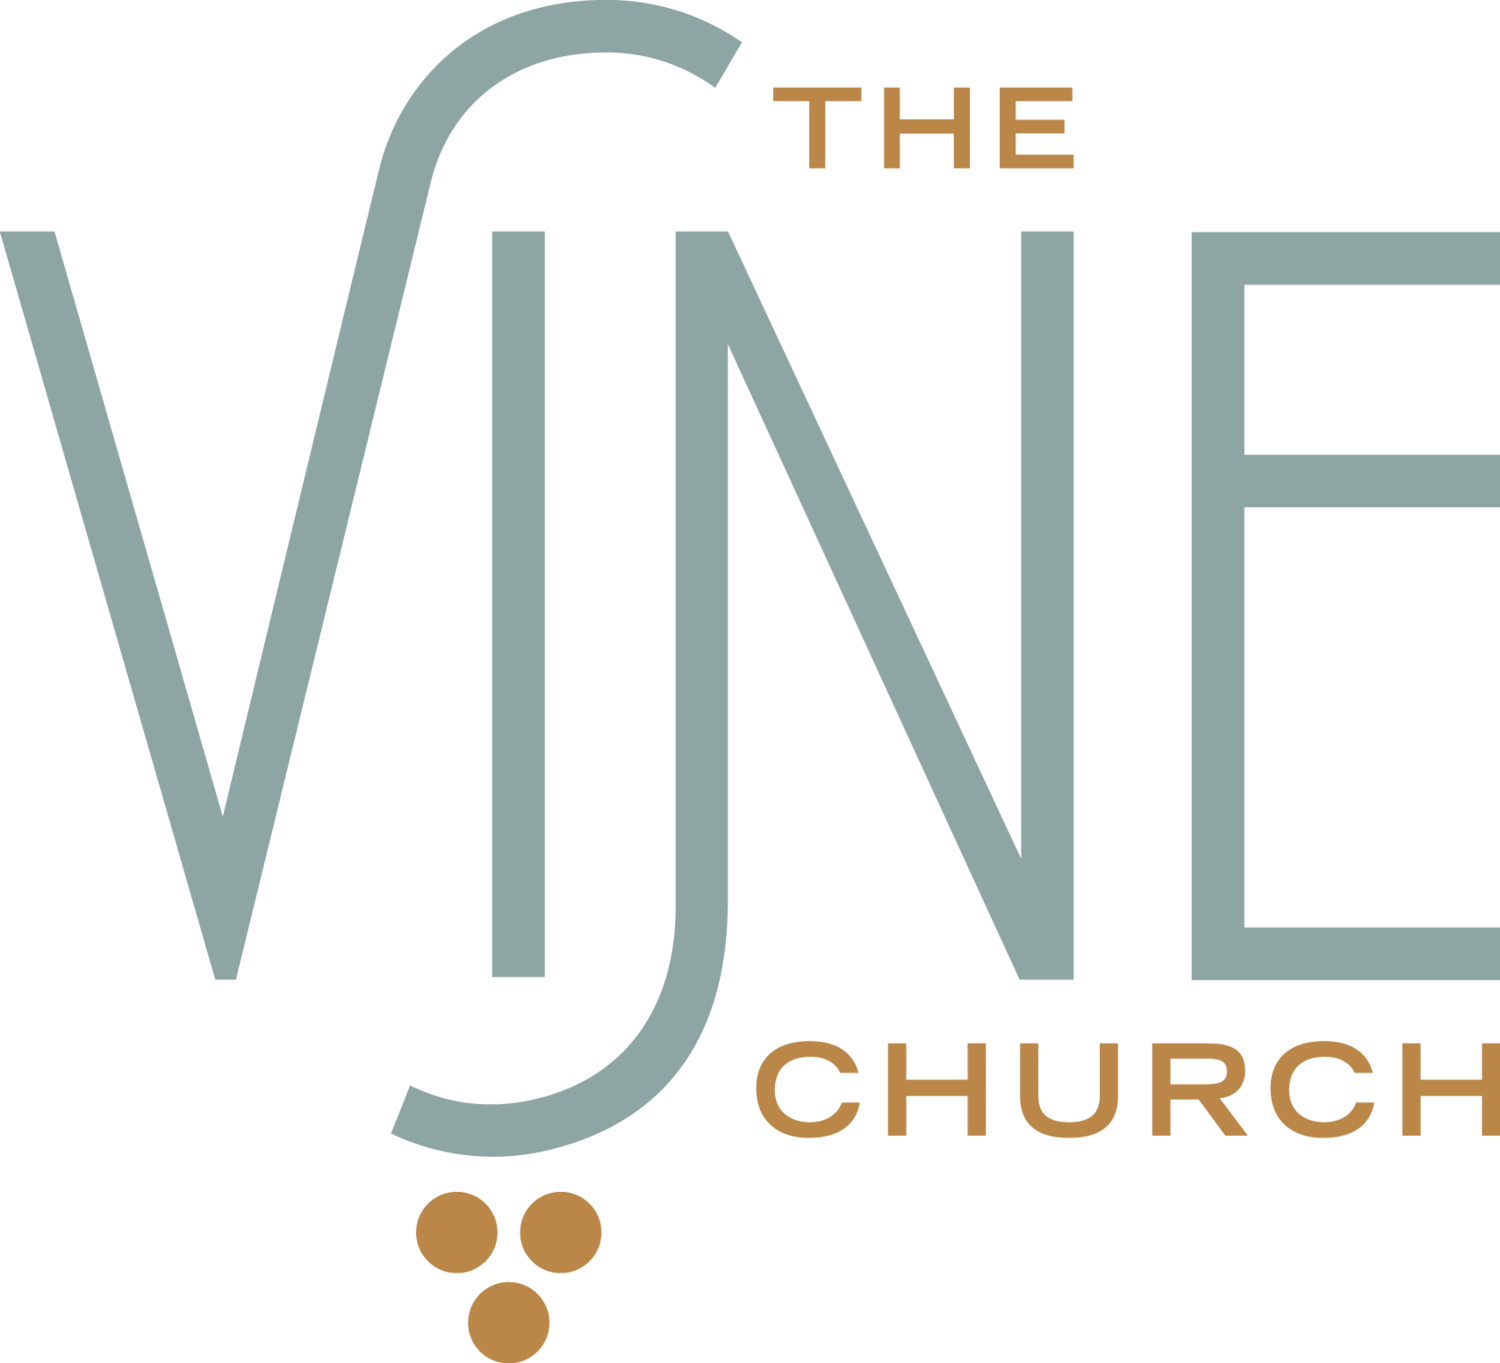 The Vine Church